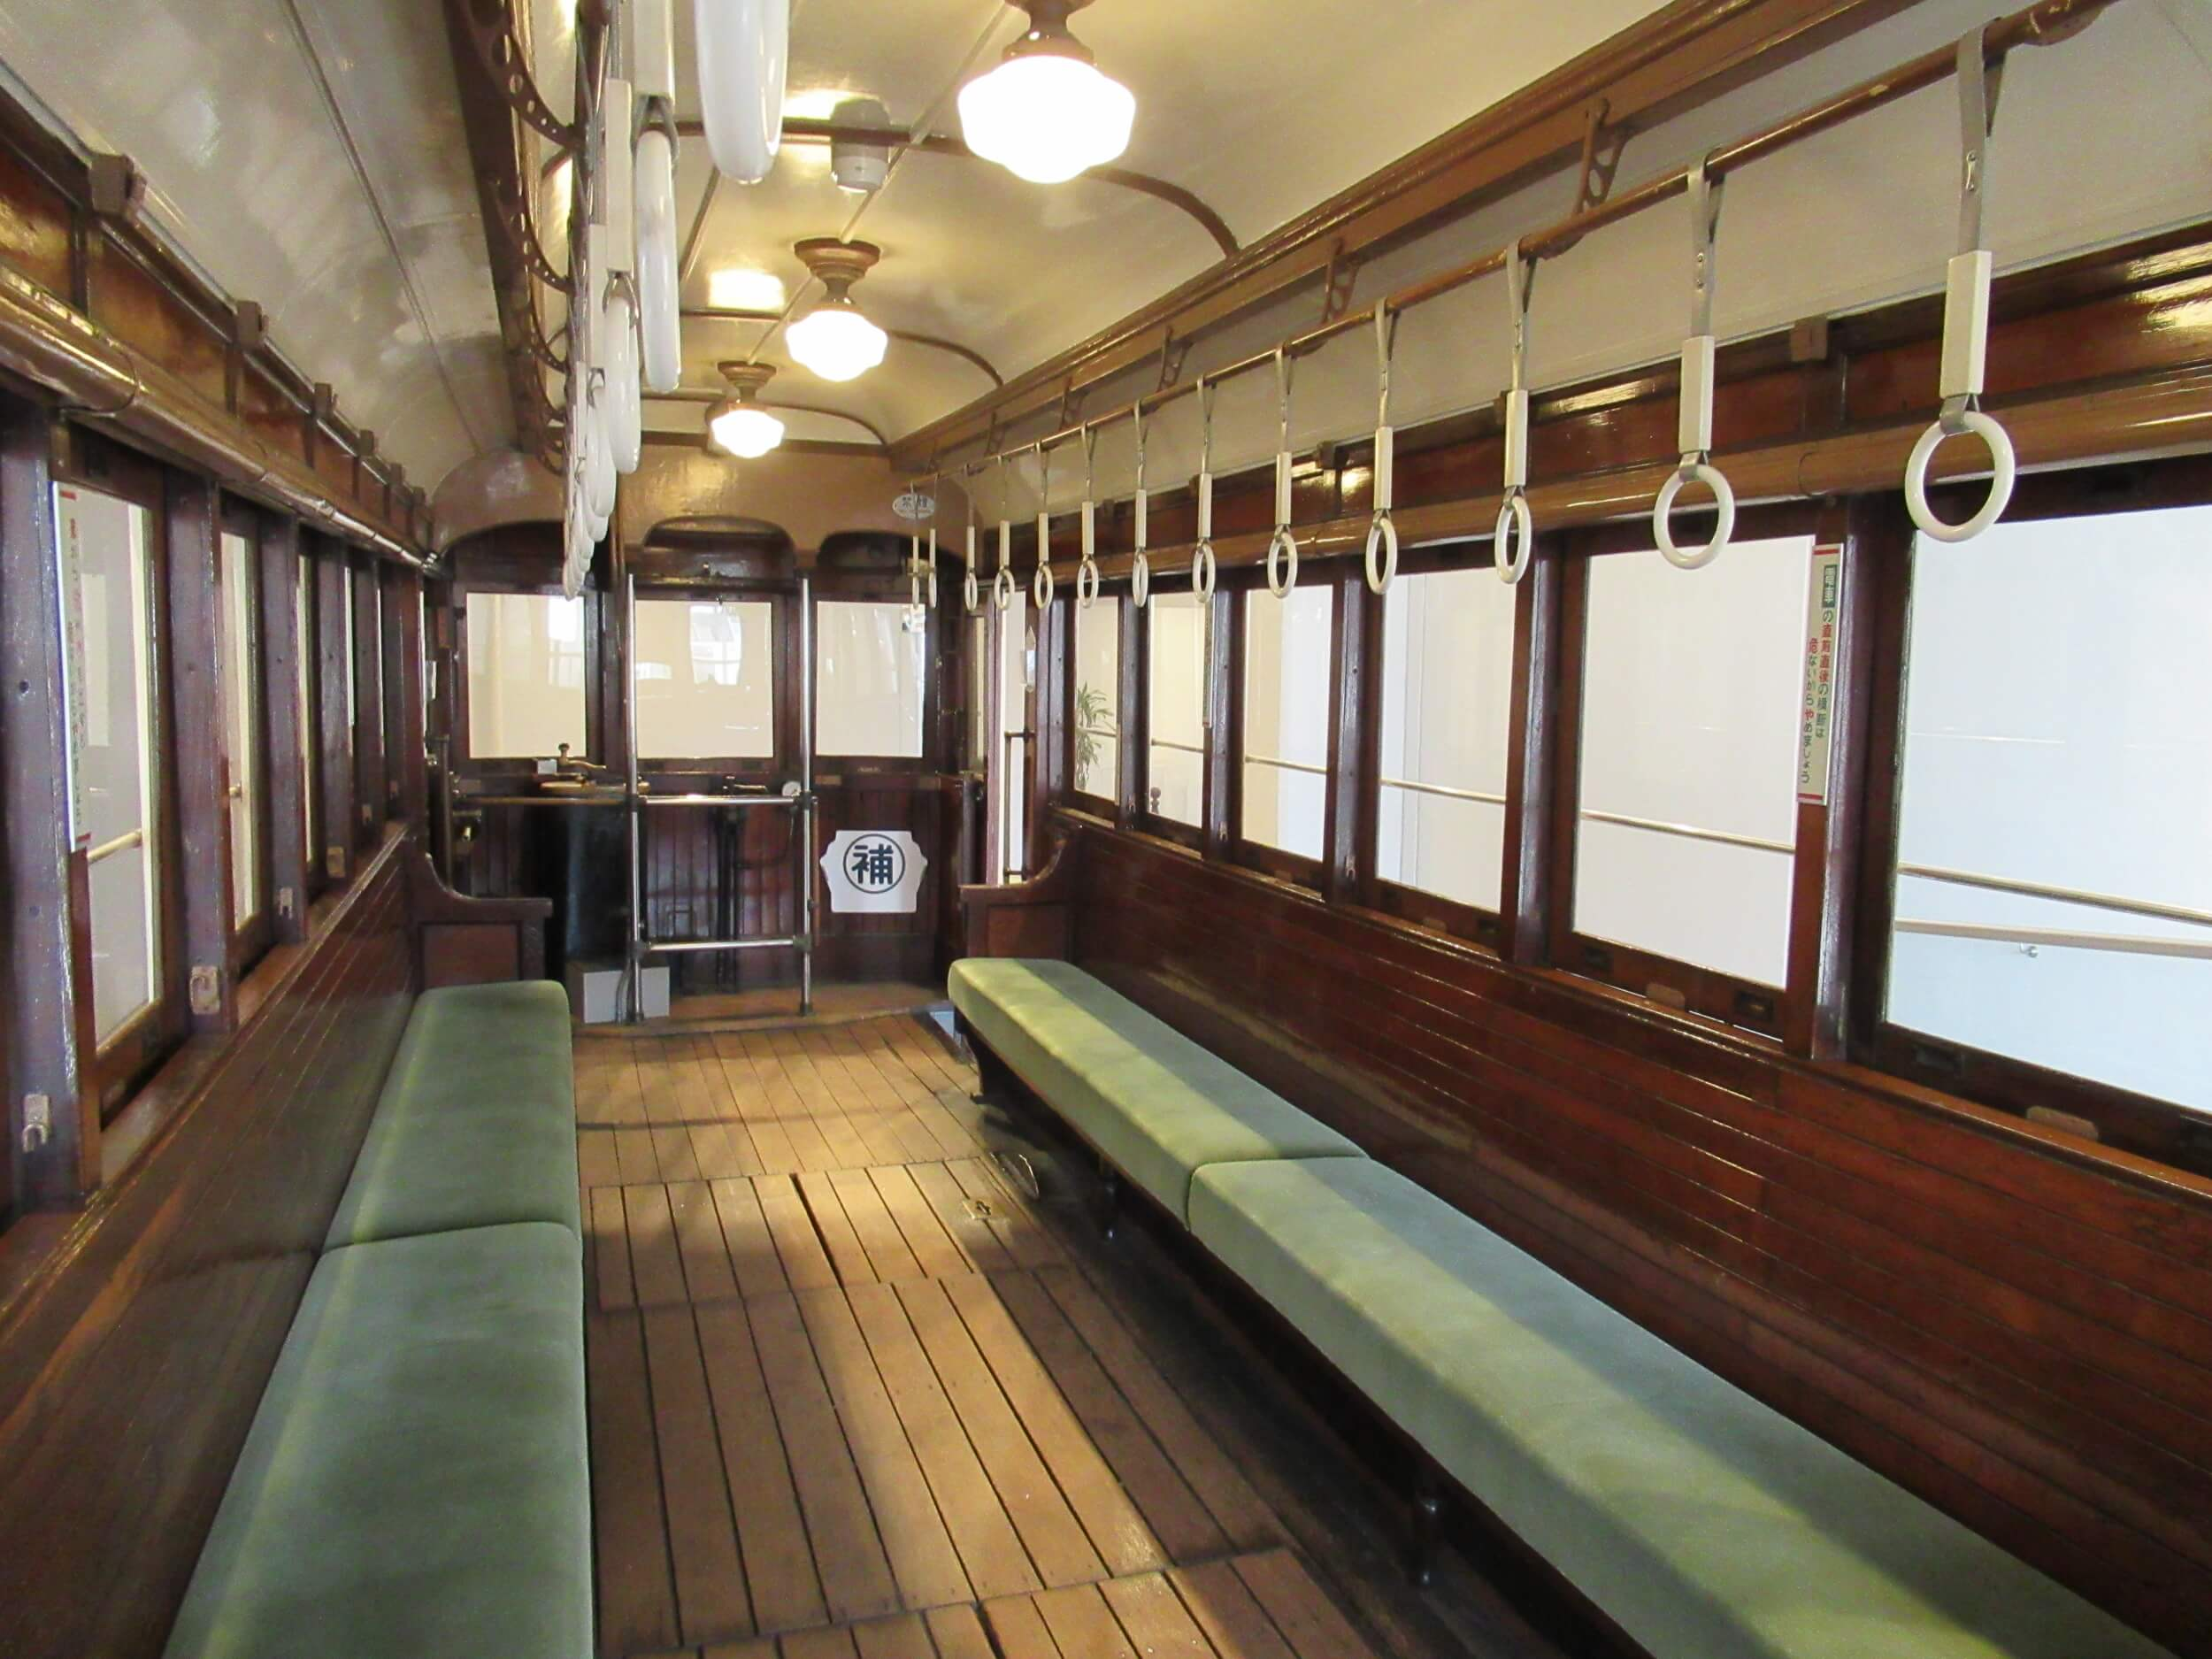 Archive hall of Shiden(Streetcar)・inside of the Streetcar